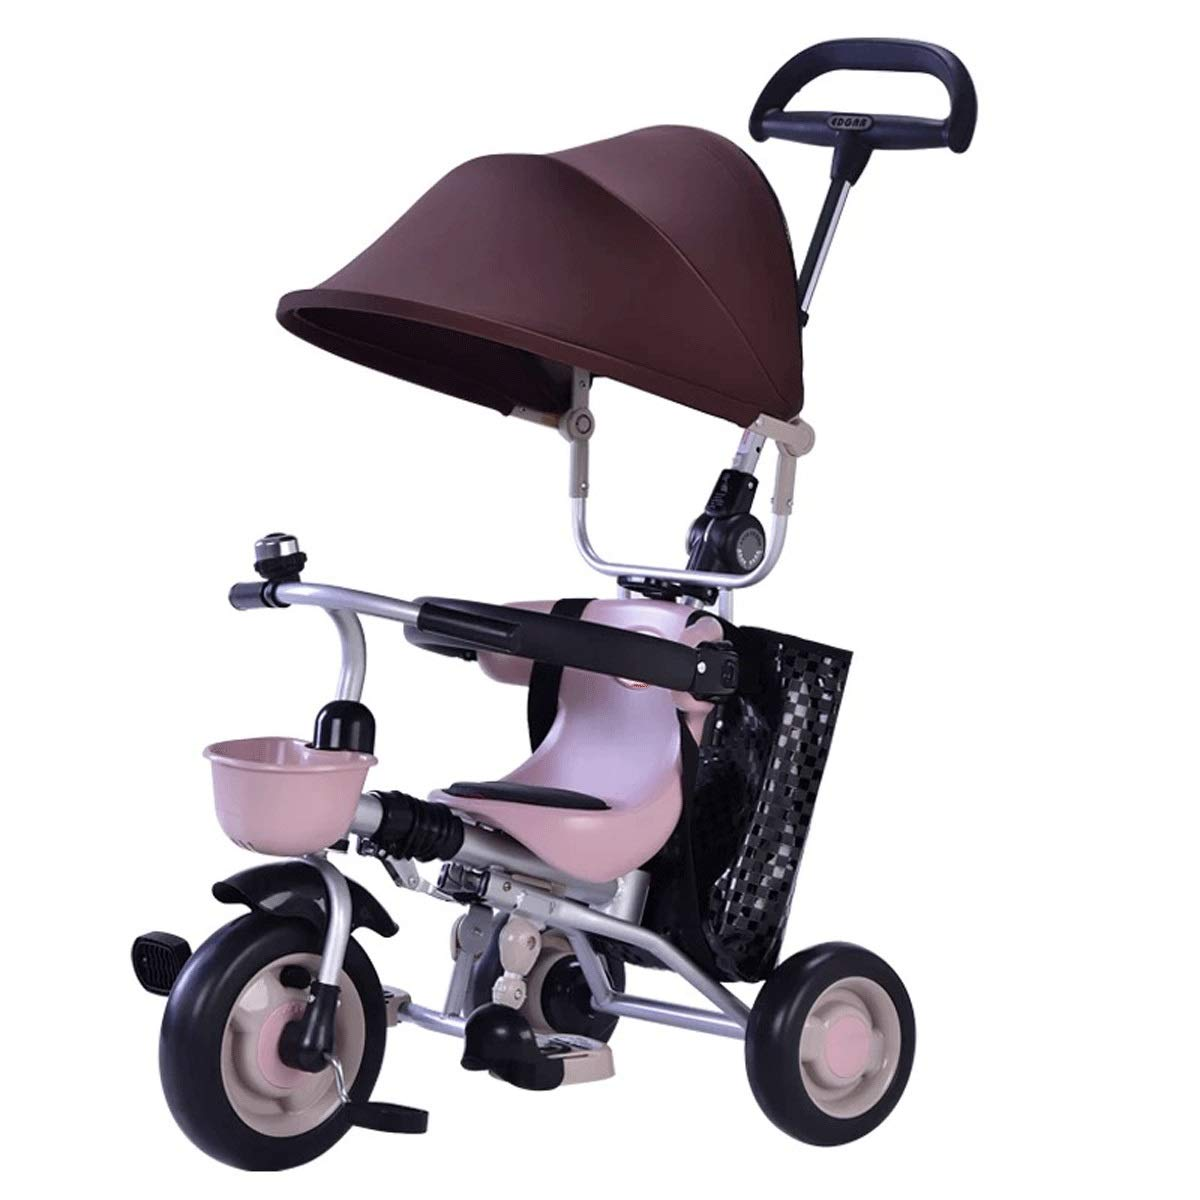 Children's Tricycle Bicycle Baby Stroller Lightweight Folding Baby Child Stroller